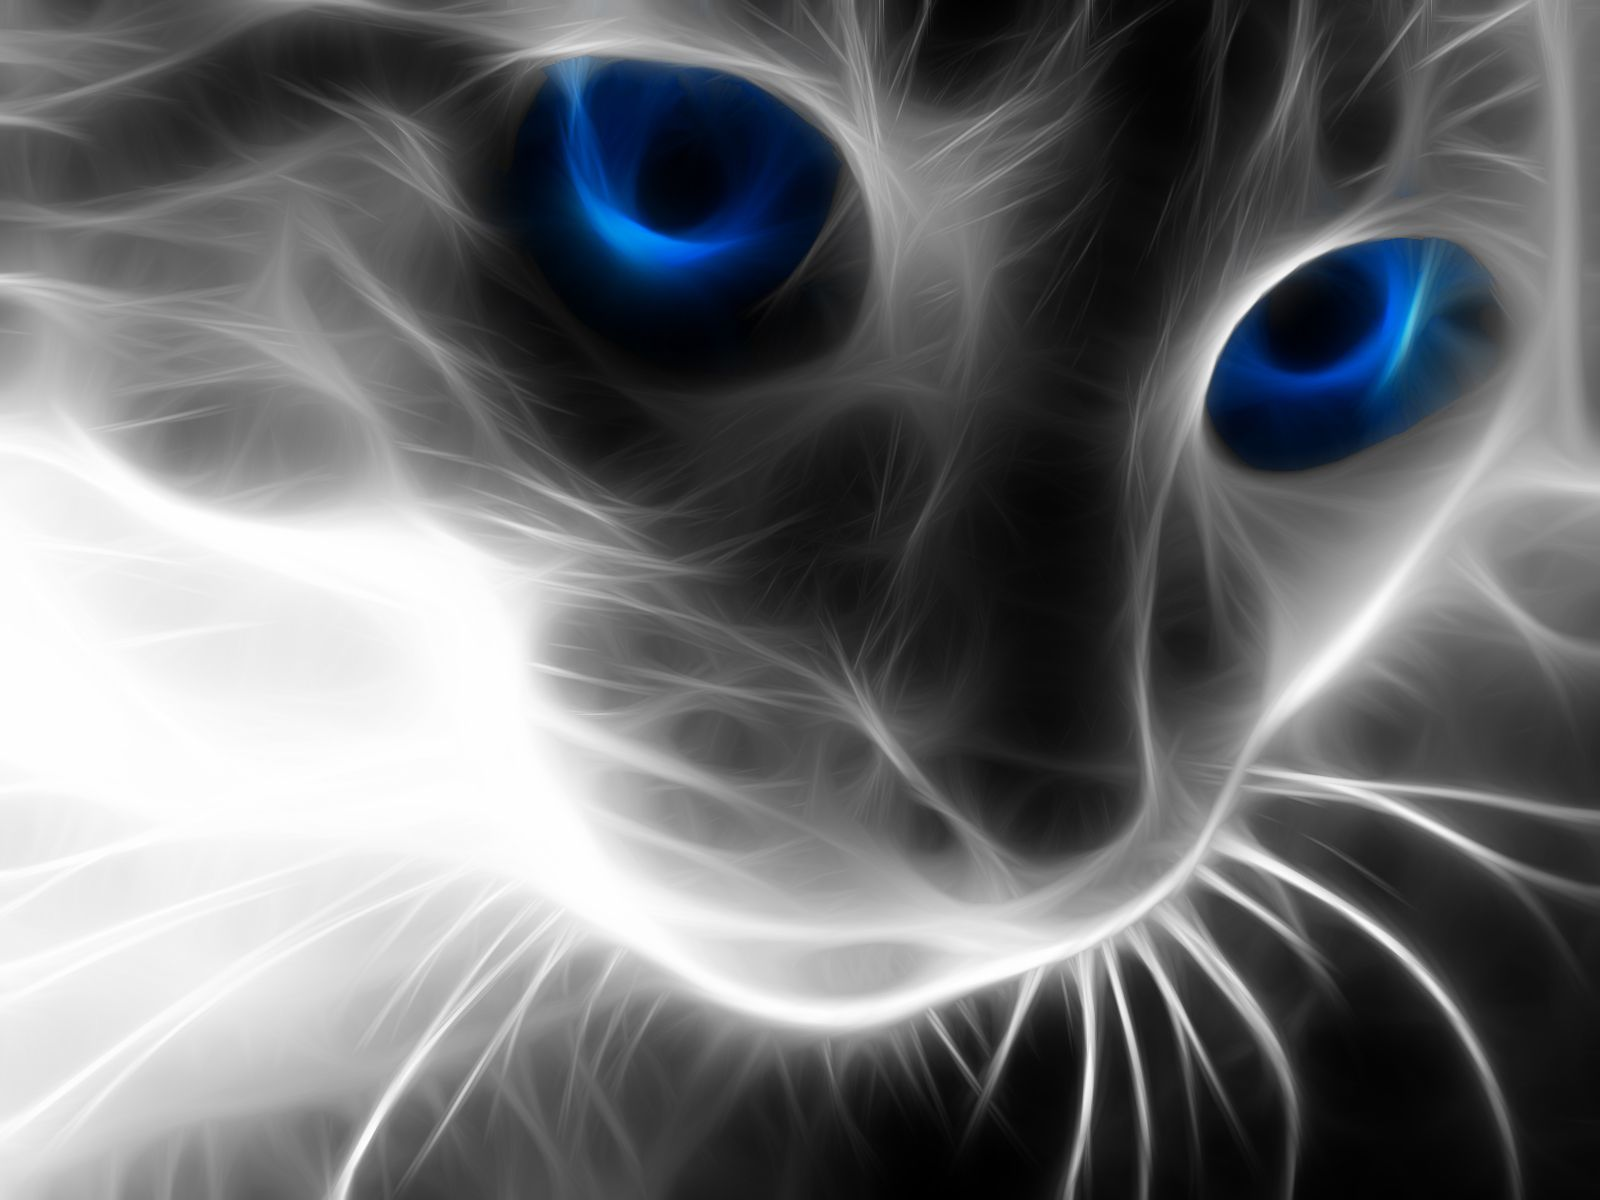 Collection of Cool Cat Wallpapers on HDWallpapers